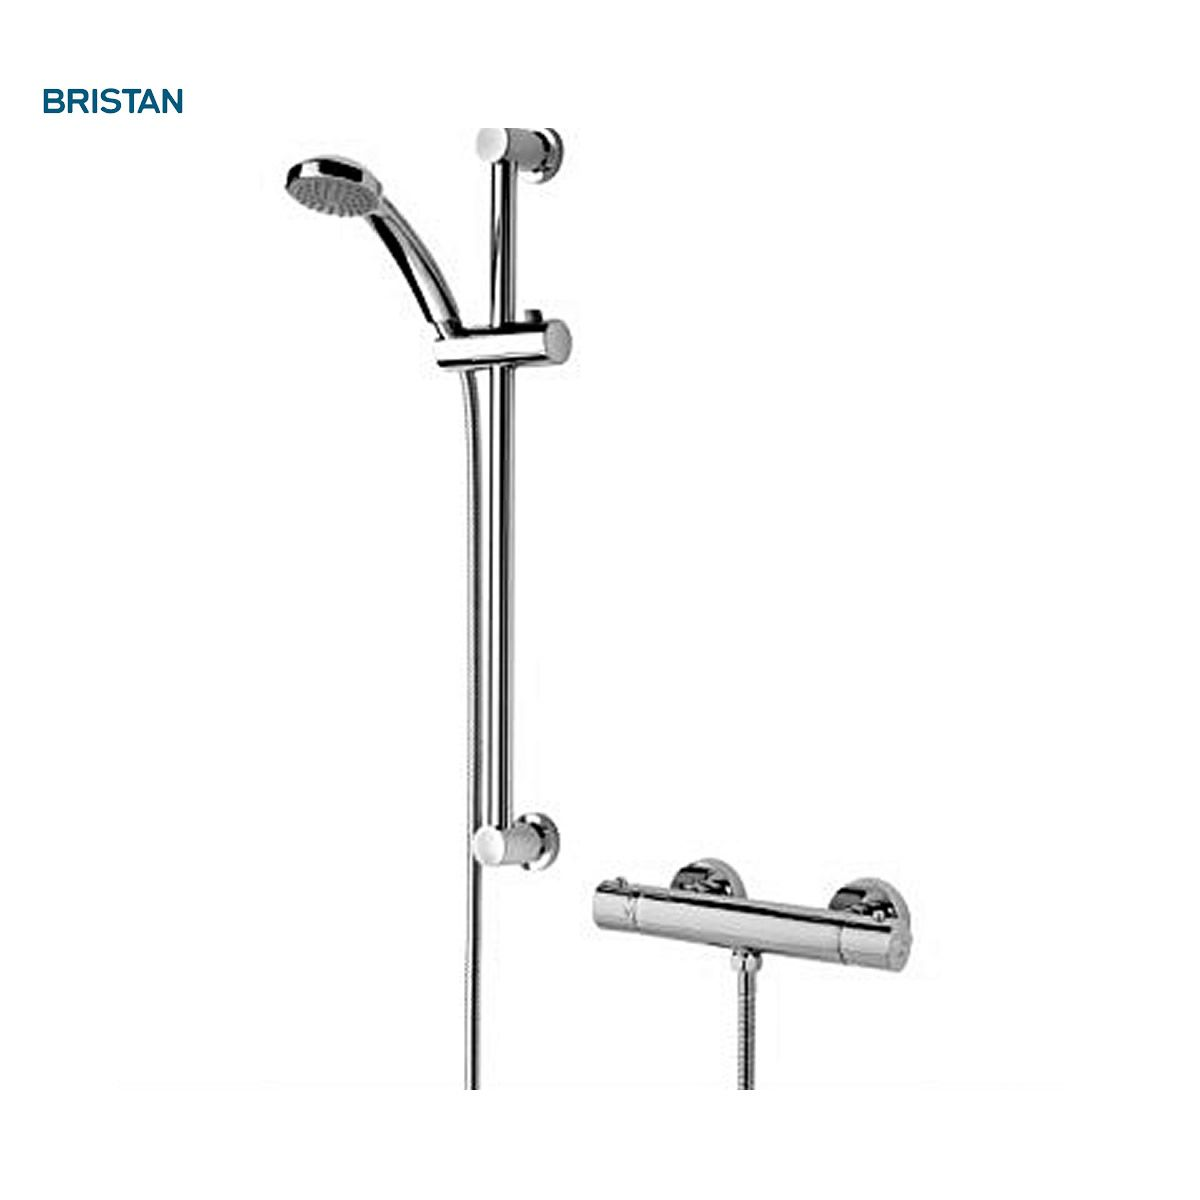 single tub balance inc pressure set handle valves shower valve category pioneer bath product industries and